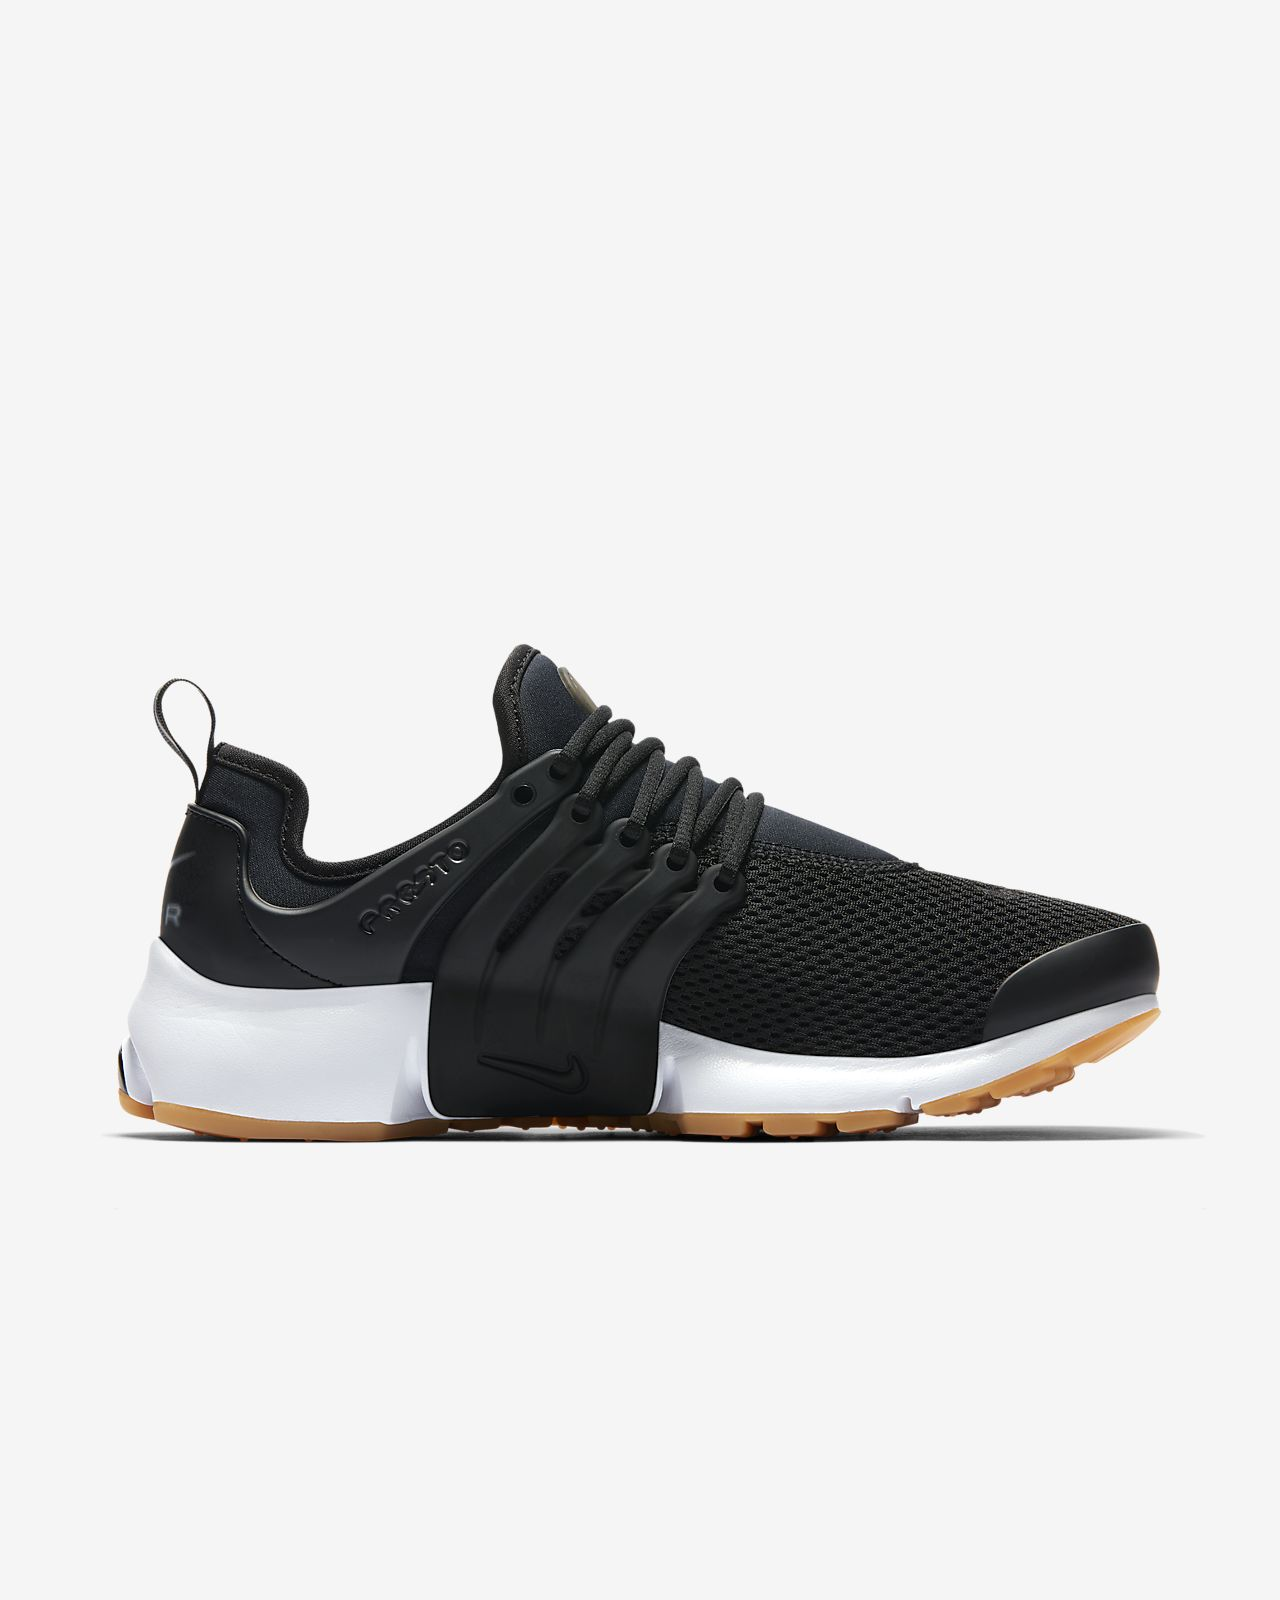 64c087c983a5 Nike Air Presto Women s Shoe. Nike.com